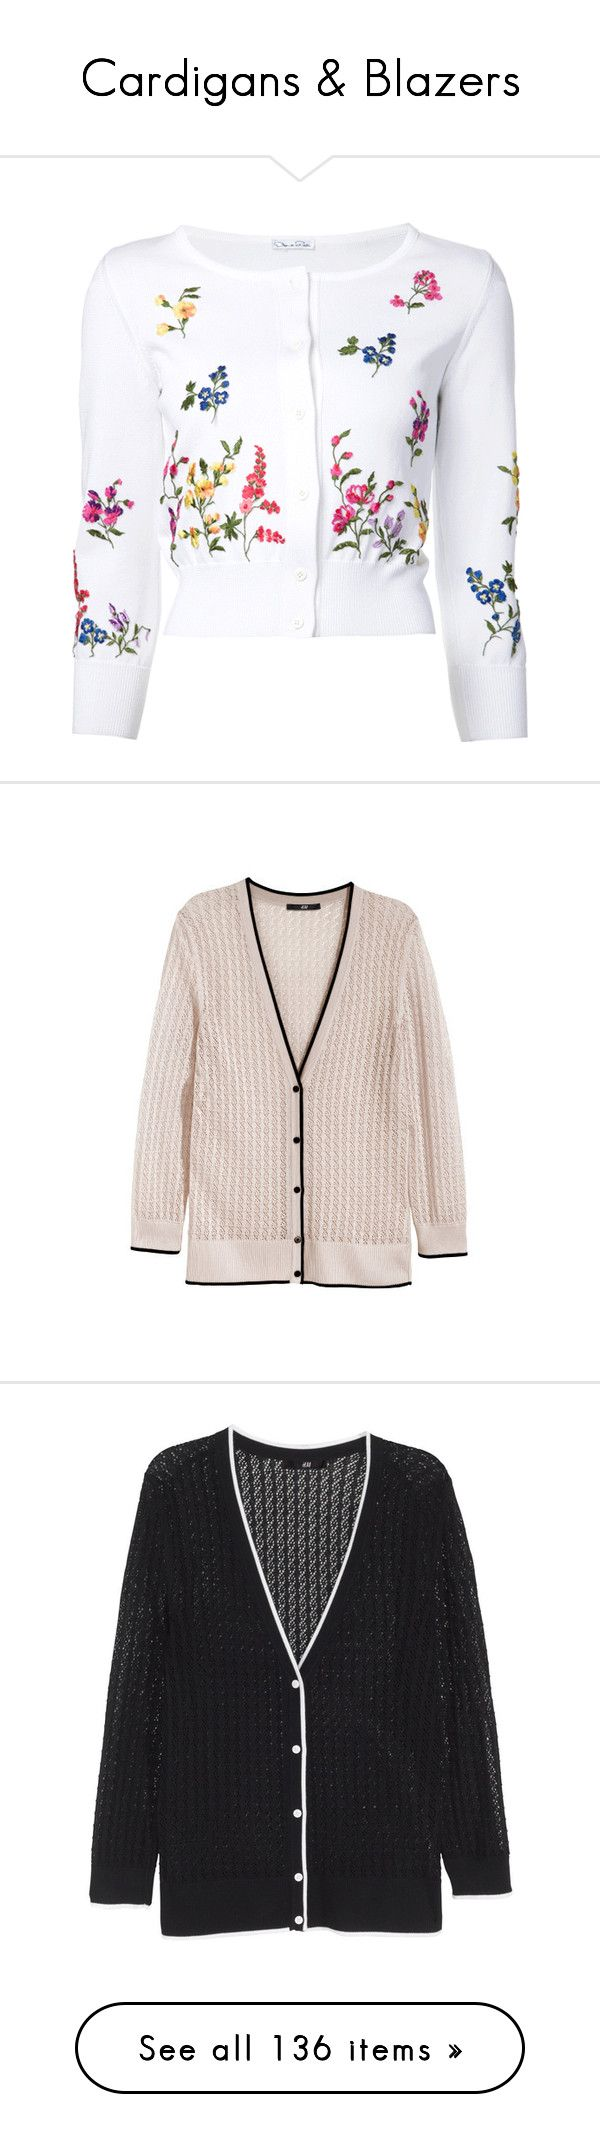 172 best sweaters images on Pinterest | Cardigans, Cashmere and ...